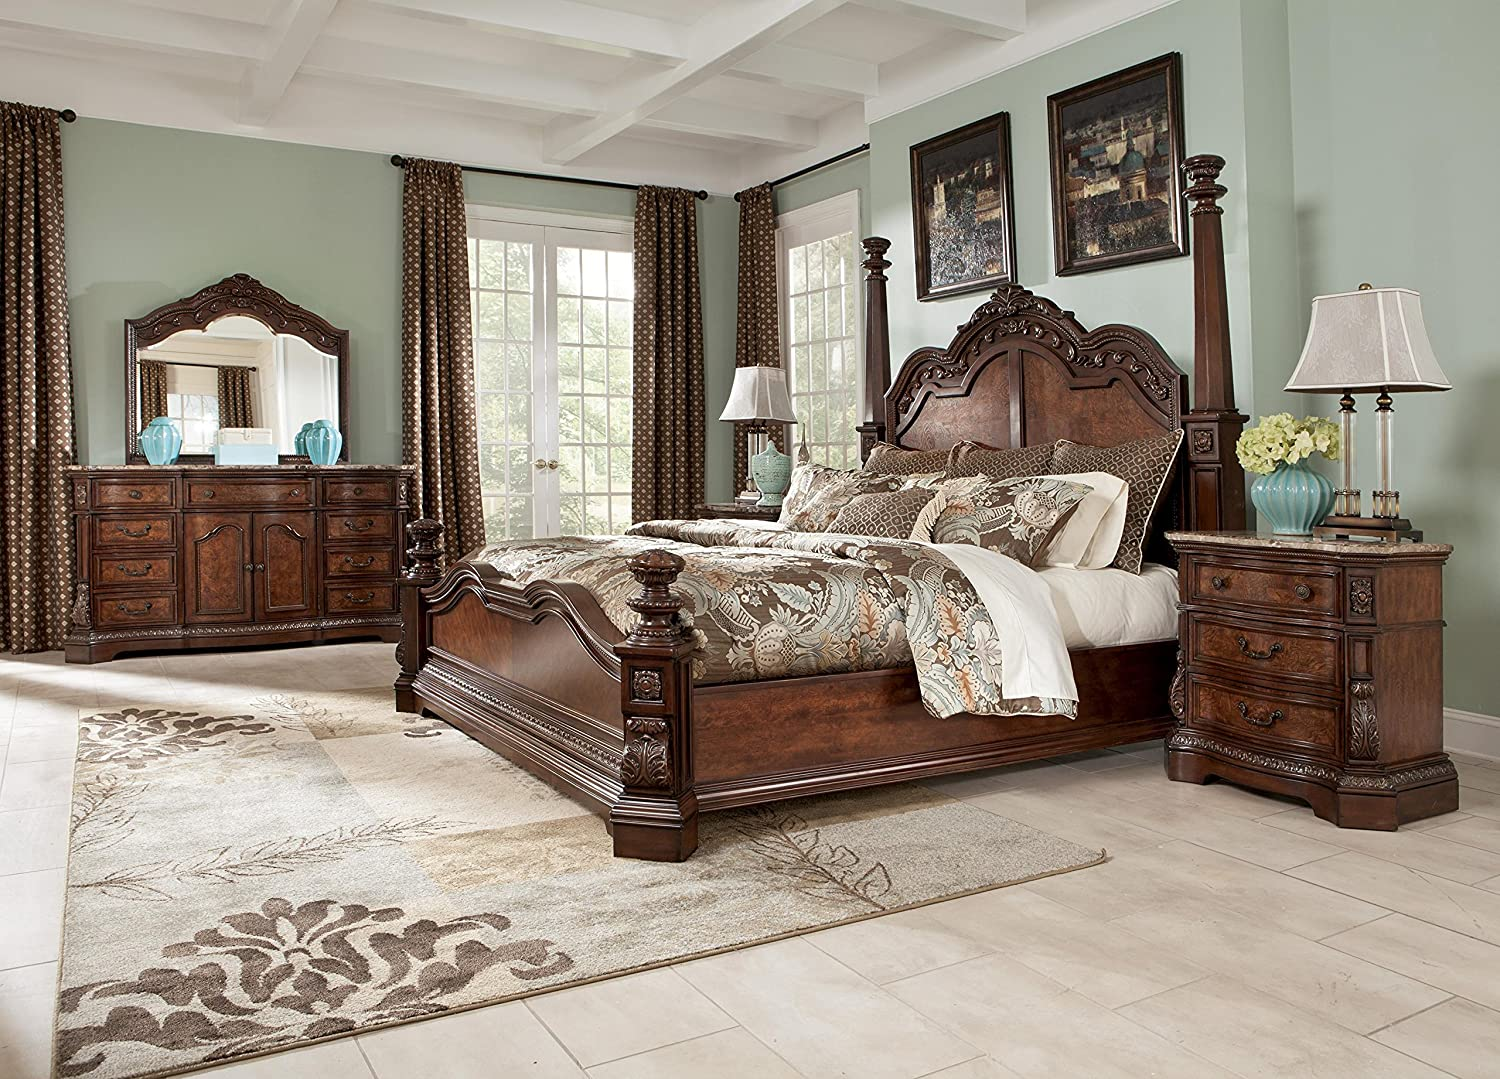 Amazon.com: Signature Design by Ashley Ledelle Bedroom Set with King ...